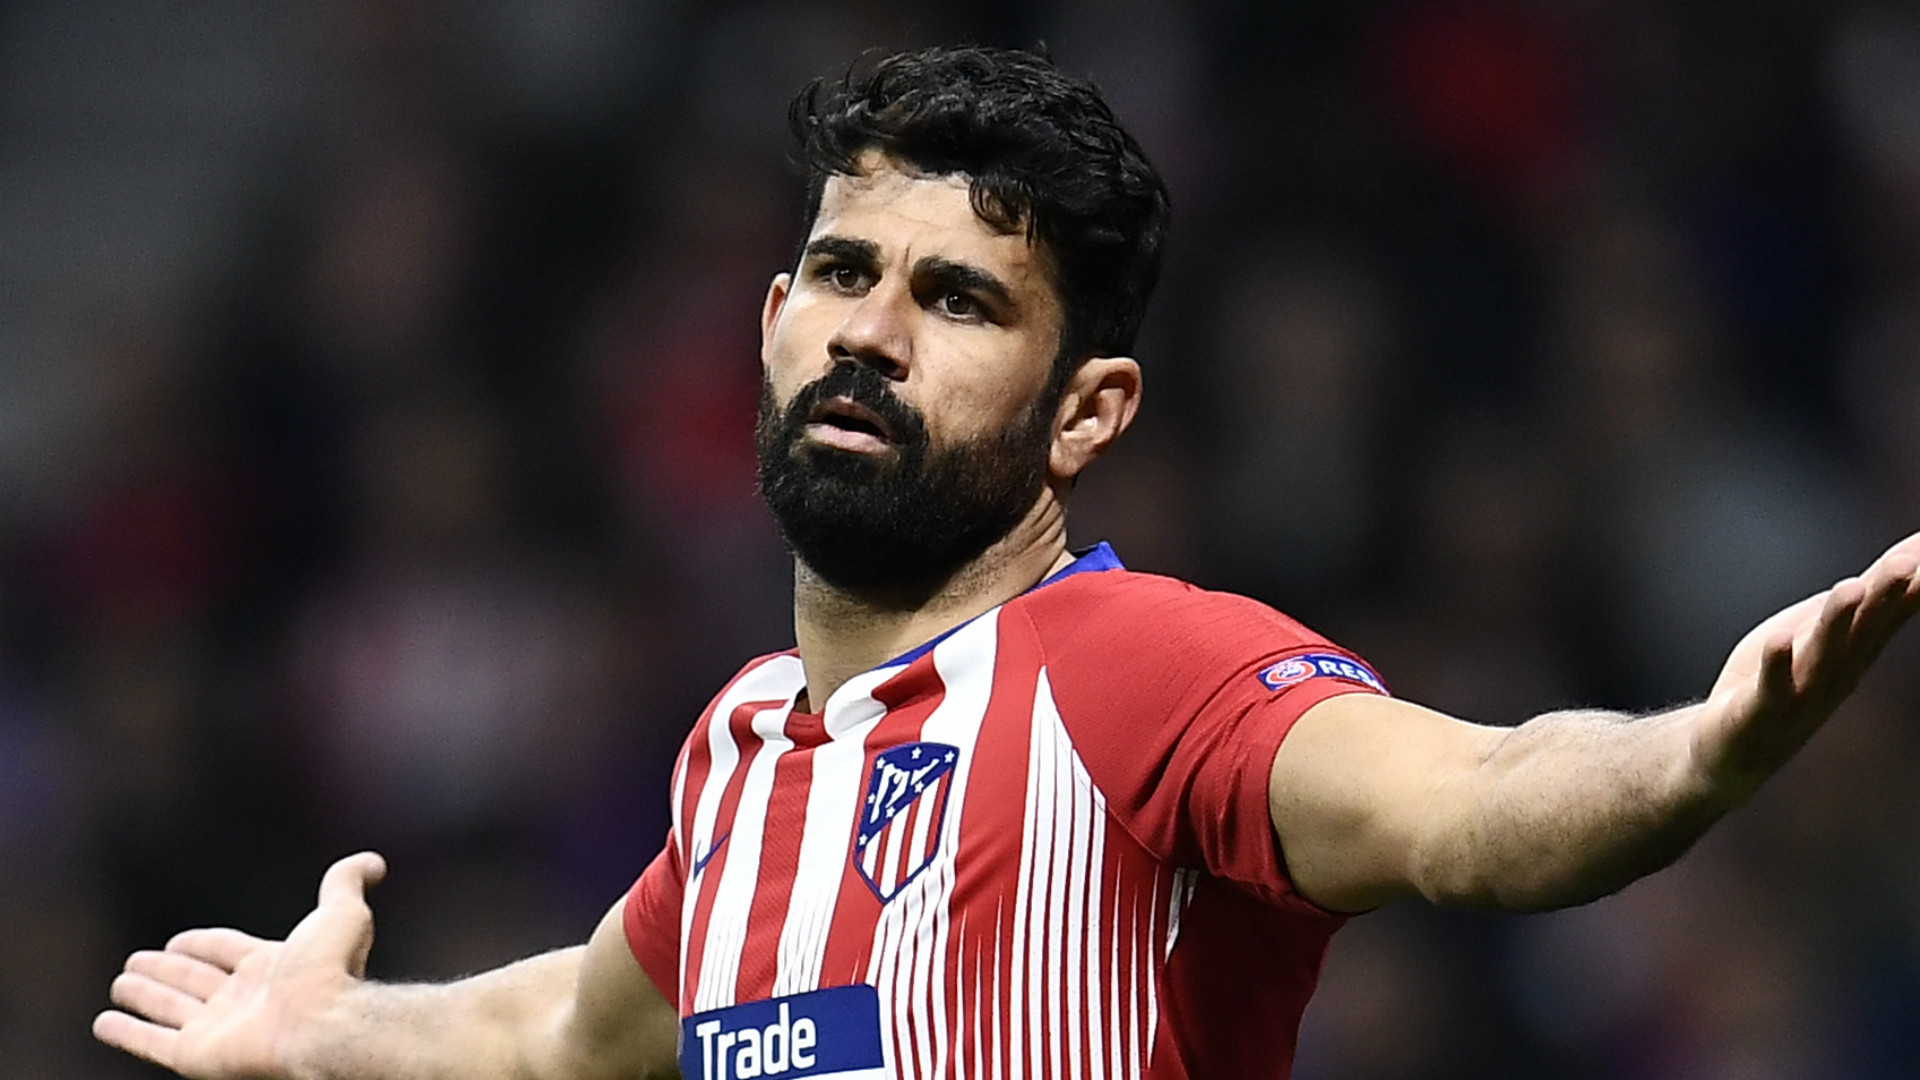 'Diego Costa would win the title for Man City' – Richards urges Guardiola to snap up former Chelsea striker